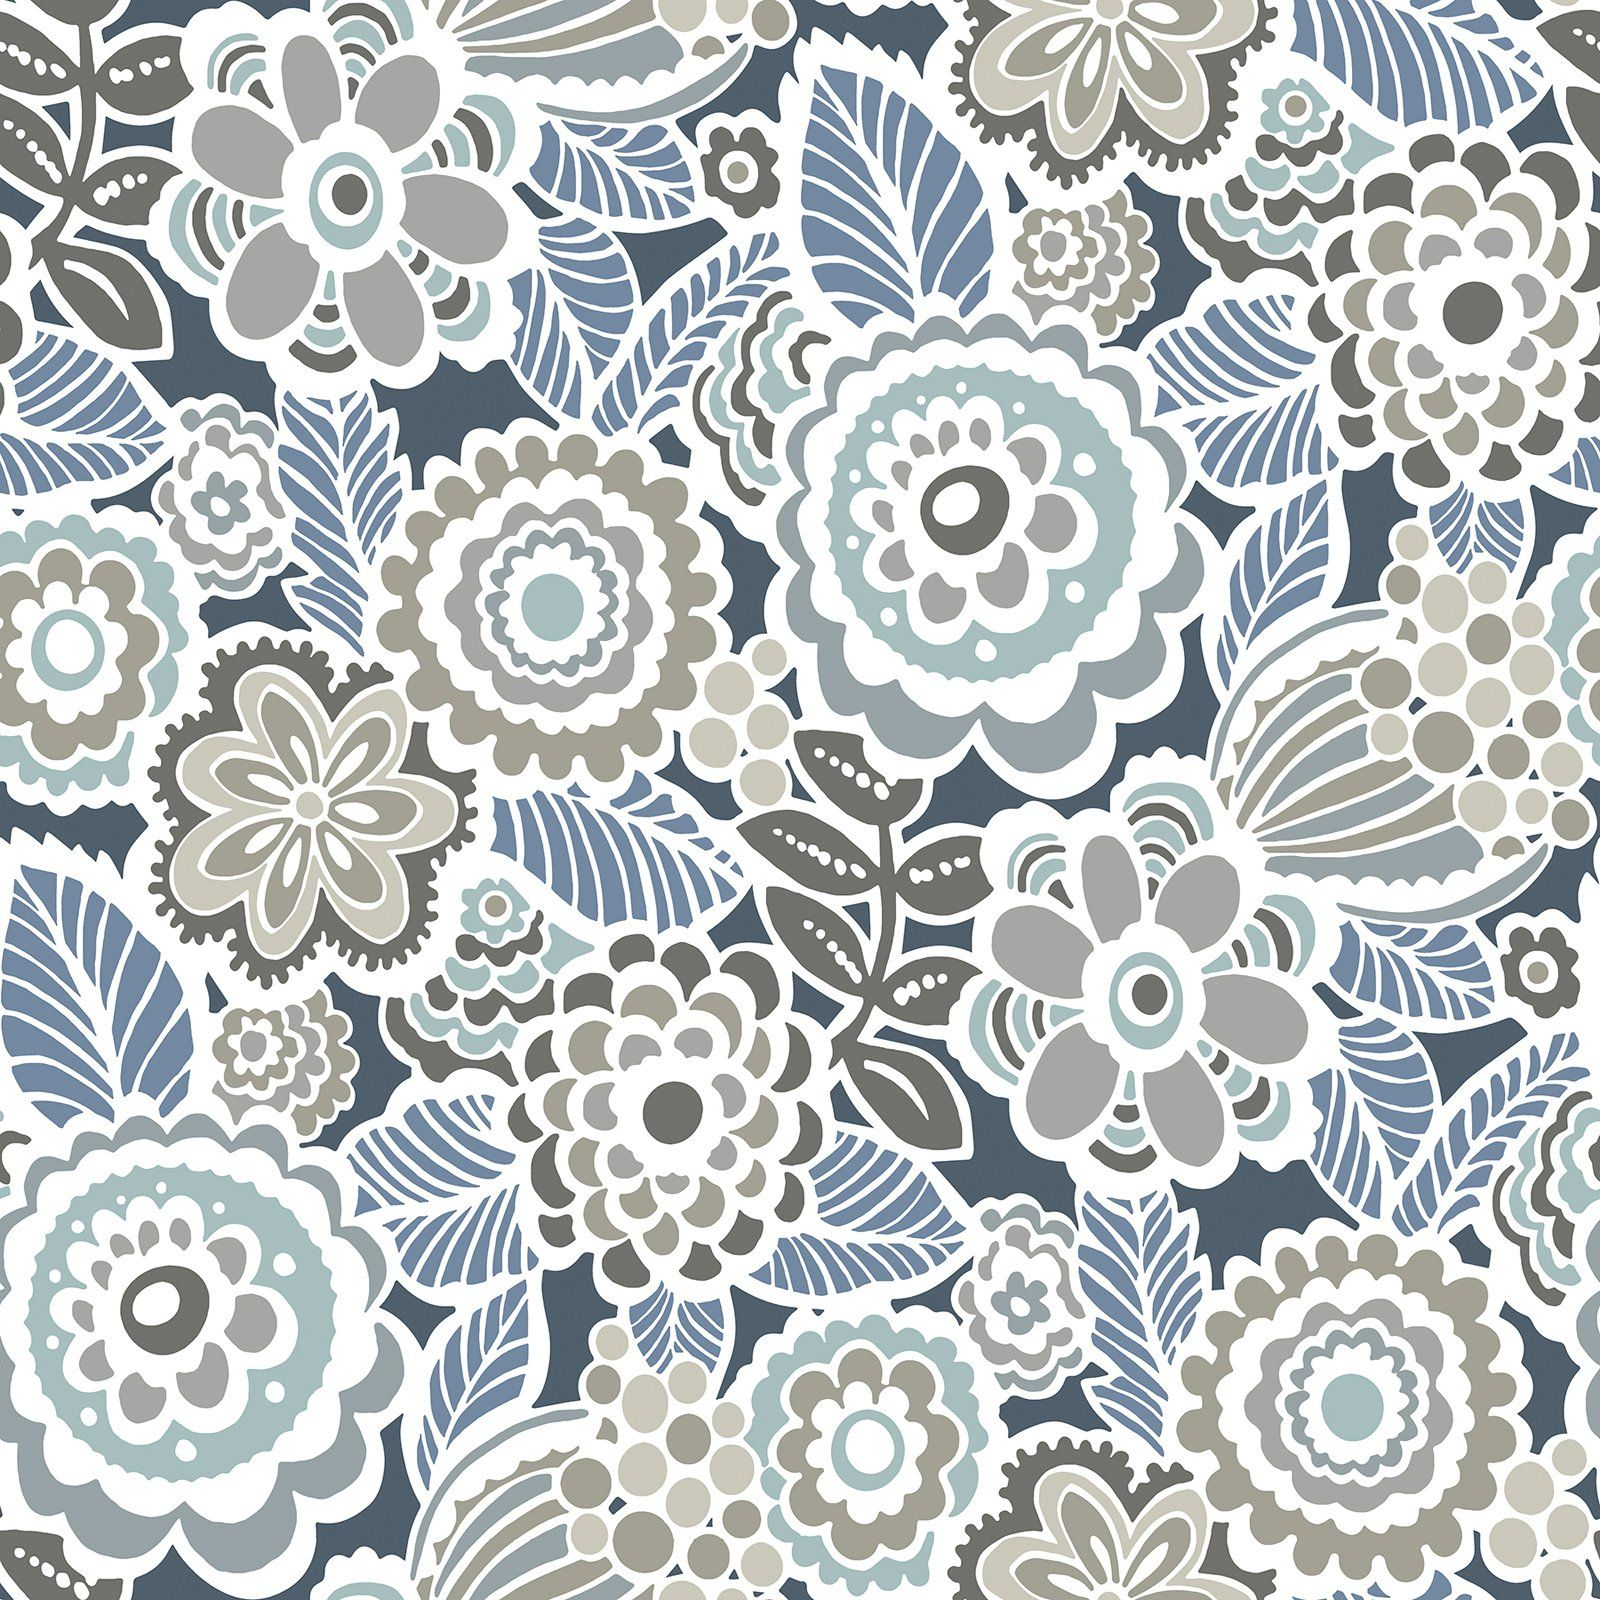 Midnight Floral Removable Fabric Wallpaper Peel and